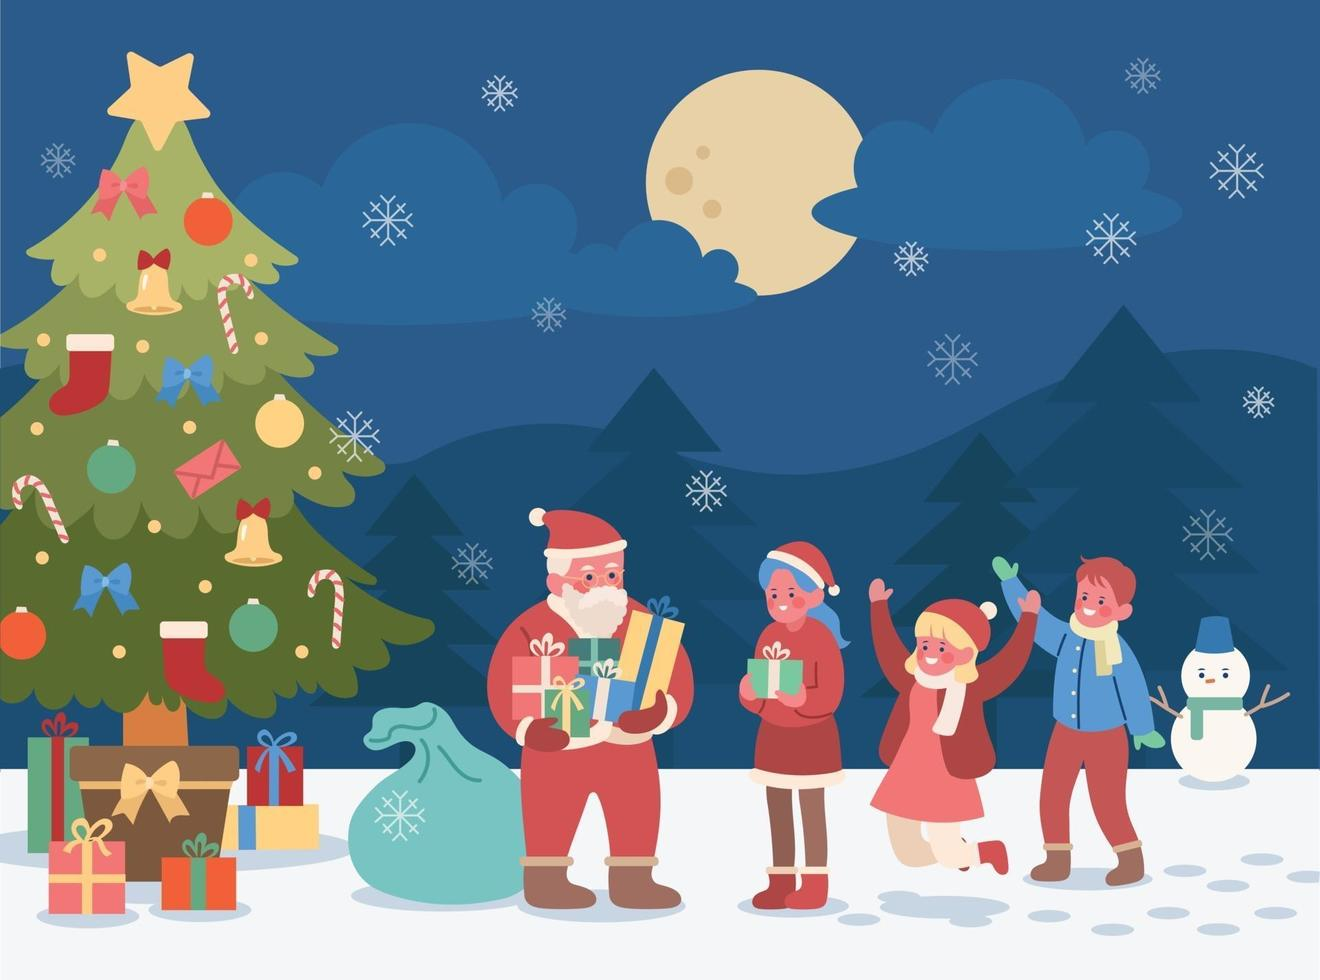 On a snowy day, under the big Christmas tree, Santa is handing out presents to the children. hand drawn style vector design illustrations.